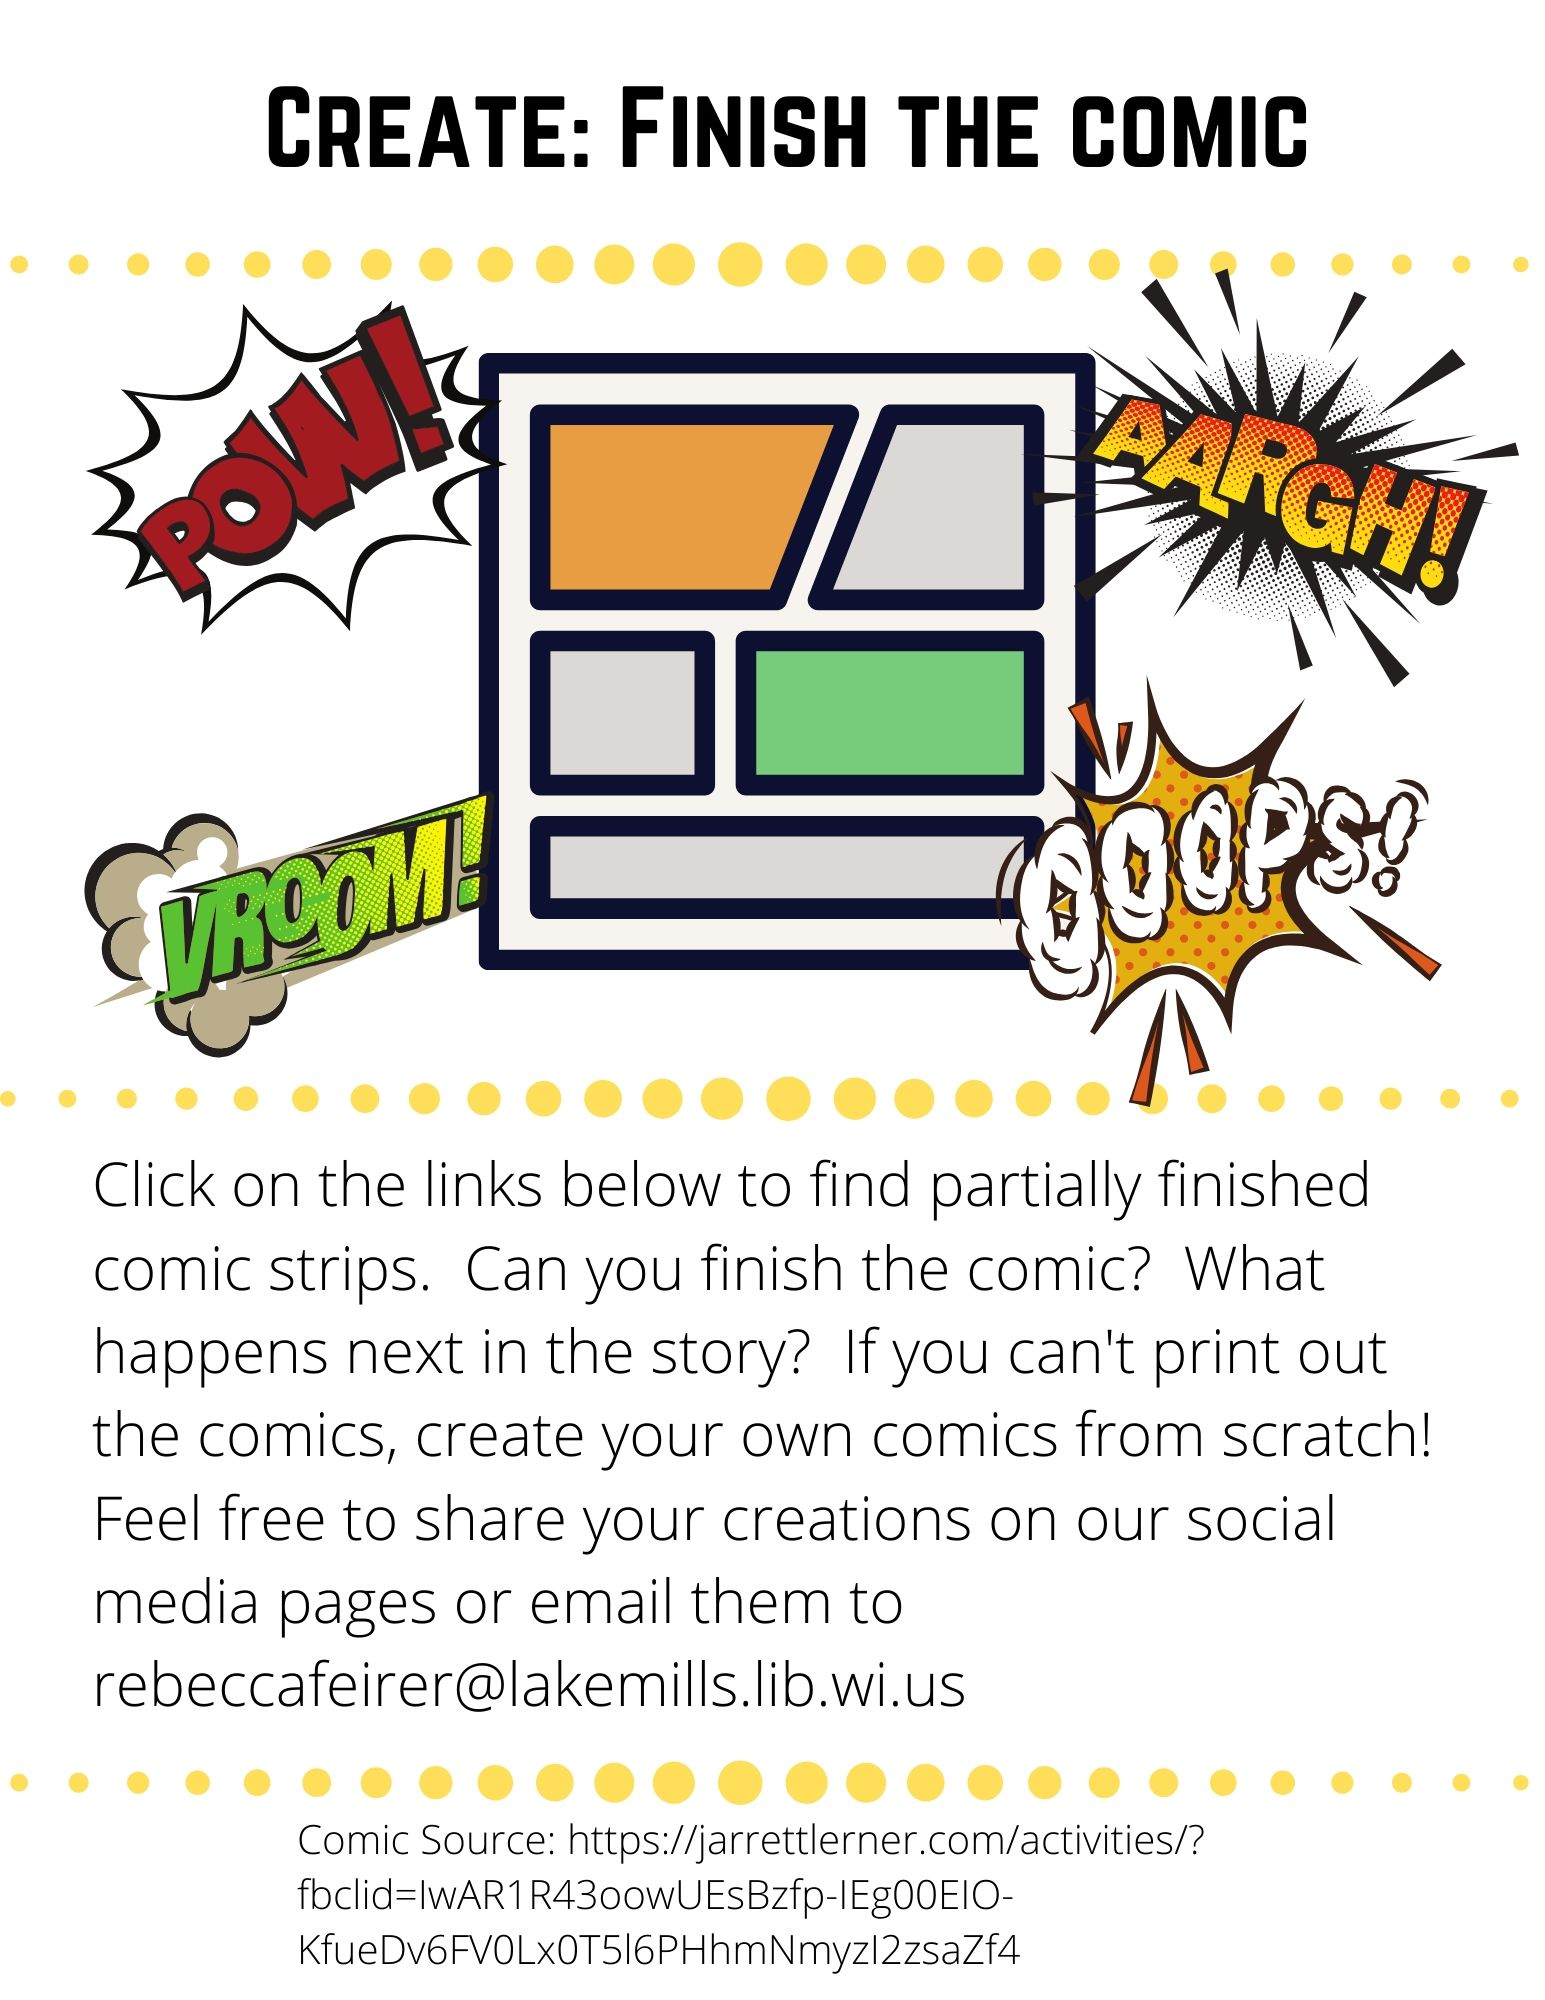 Click on the links below to find partially finished comic strips.  Can you finish the comic?  What happens next in the story?  If you can't print out the comics, create your own comics from scratch!  Feel free to share your creations on our social media pages or email them to rebeccafeirer@lakemills.lib.wi.us